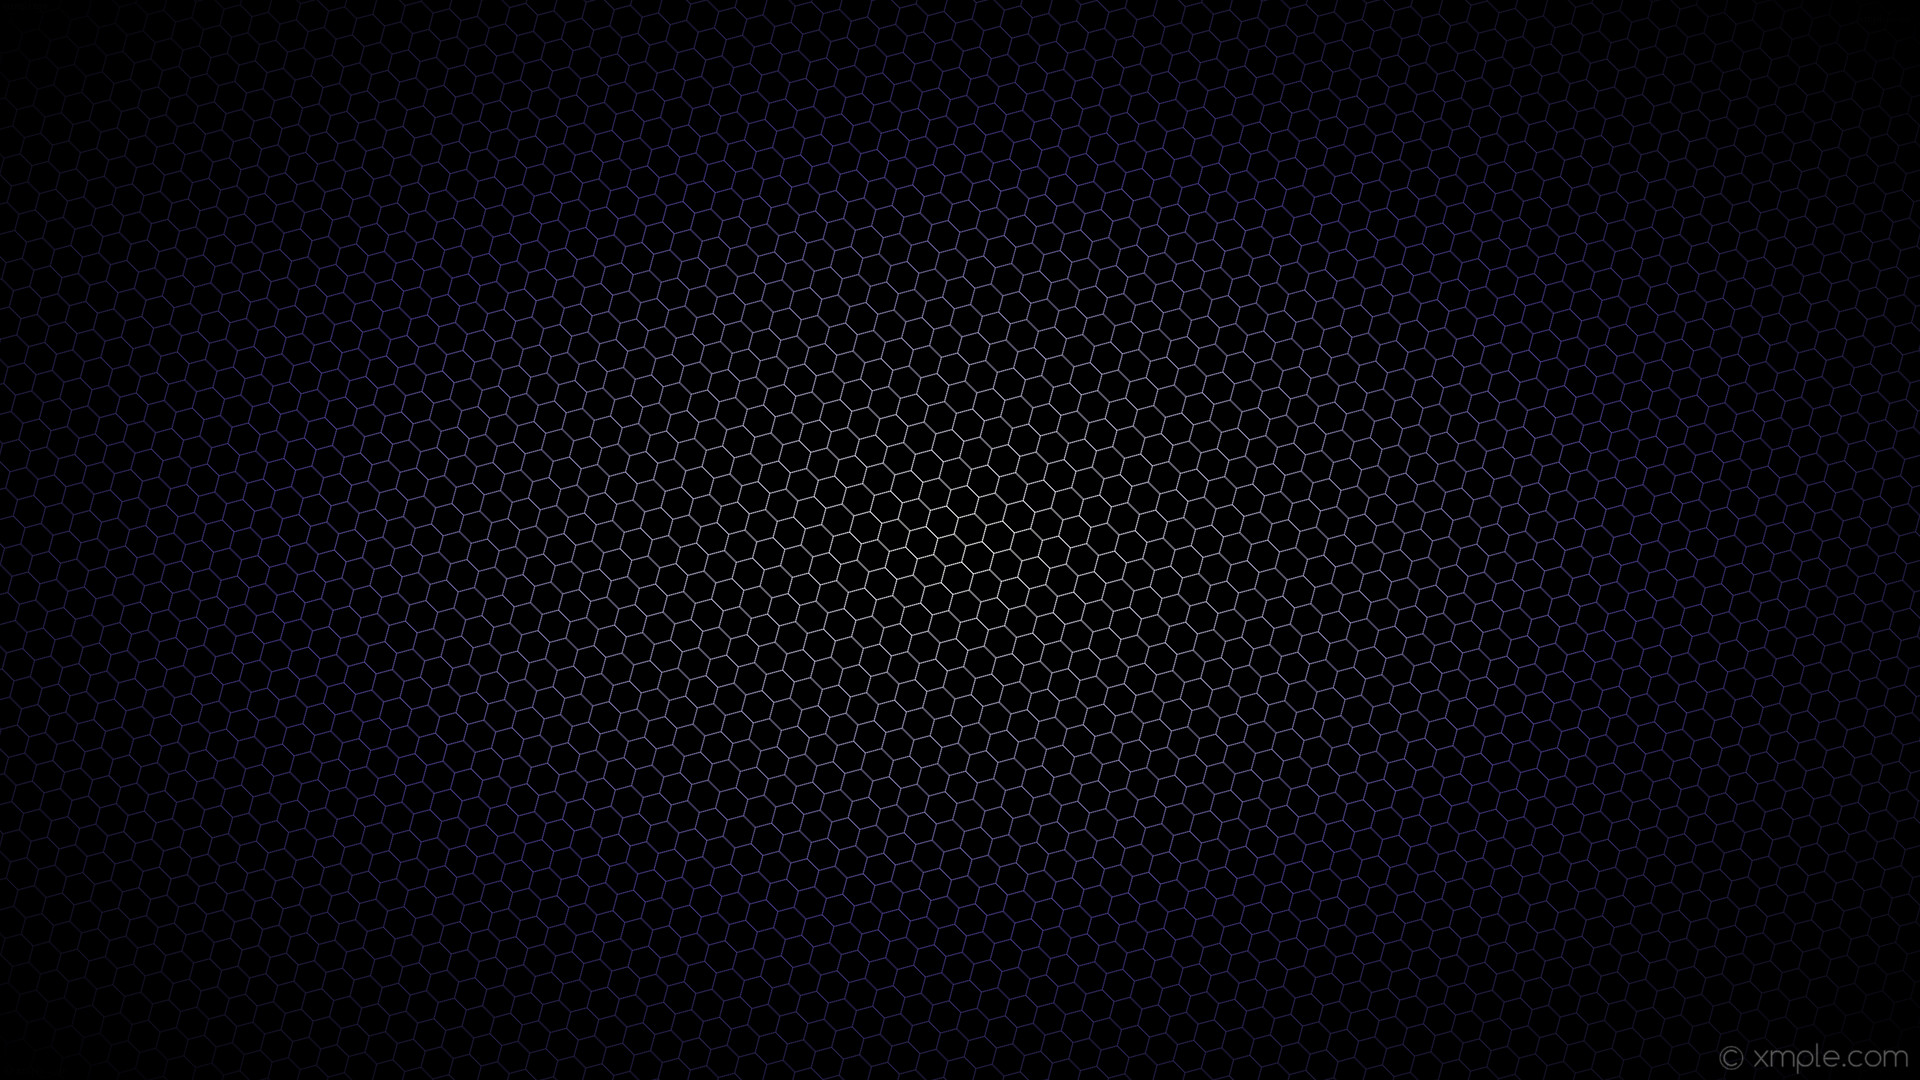 1920x1080 wallpaper black white hexagon purple glow gradient dark slate blue #000000  #ffffff #483d8b